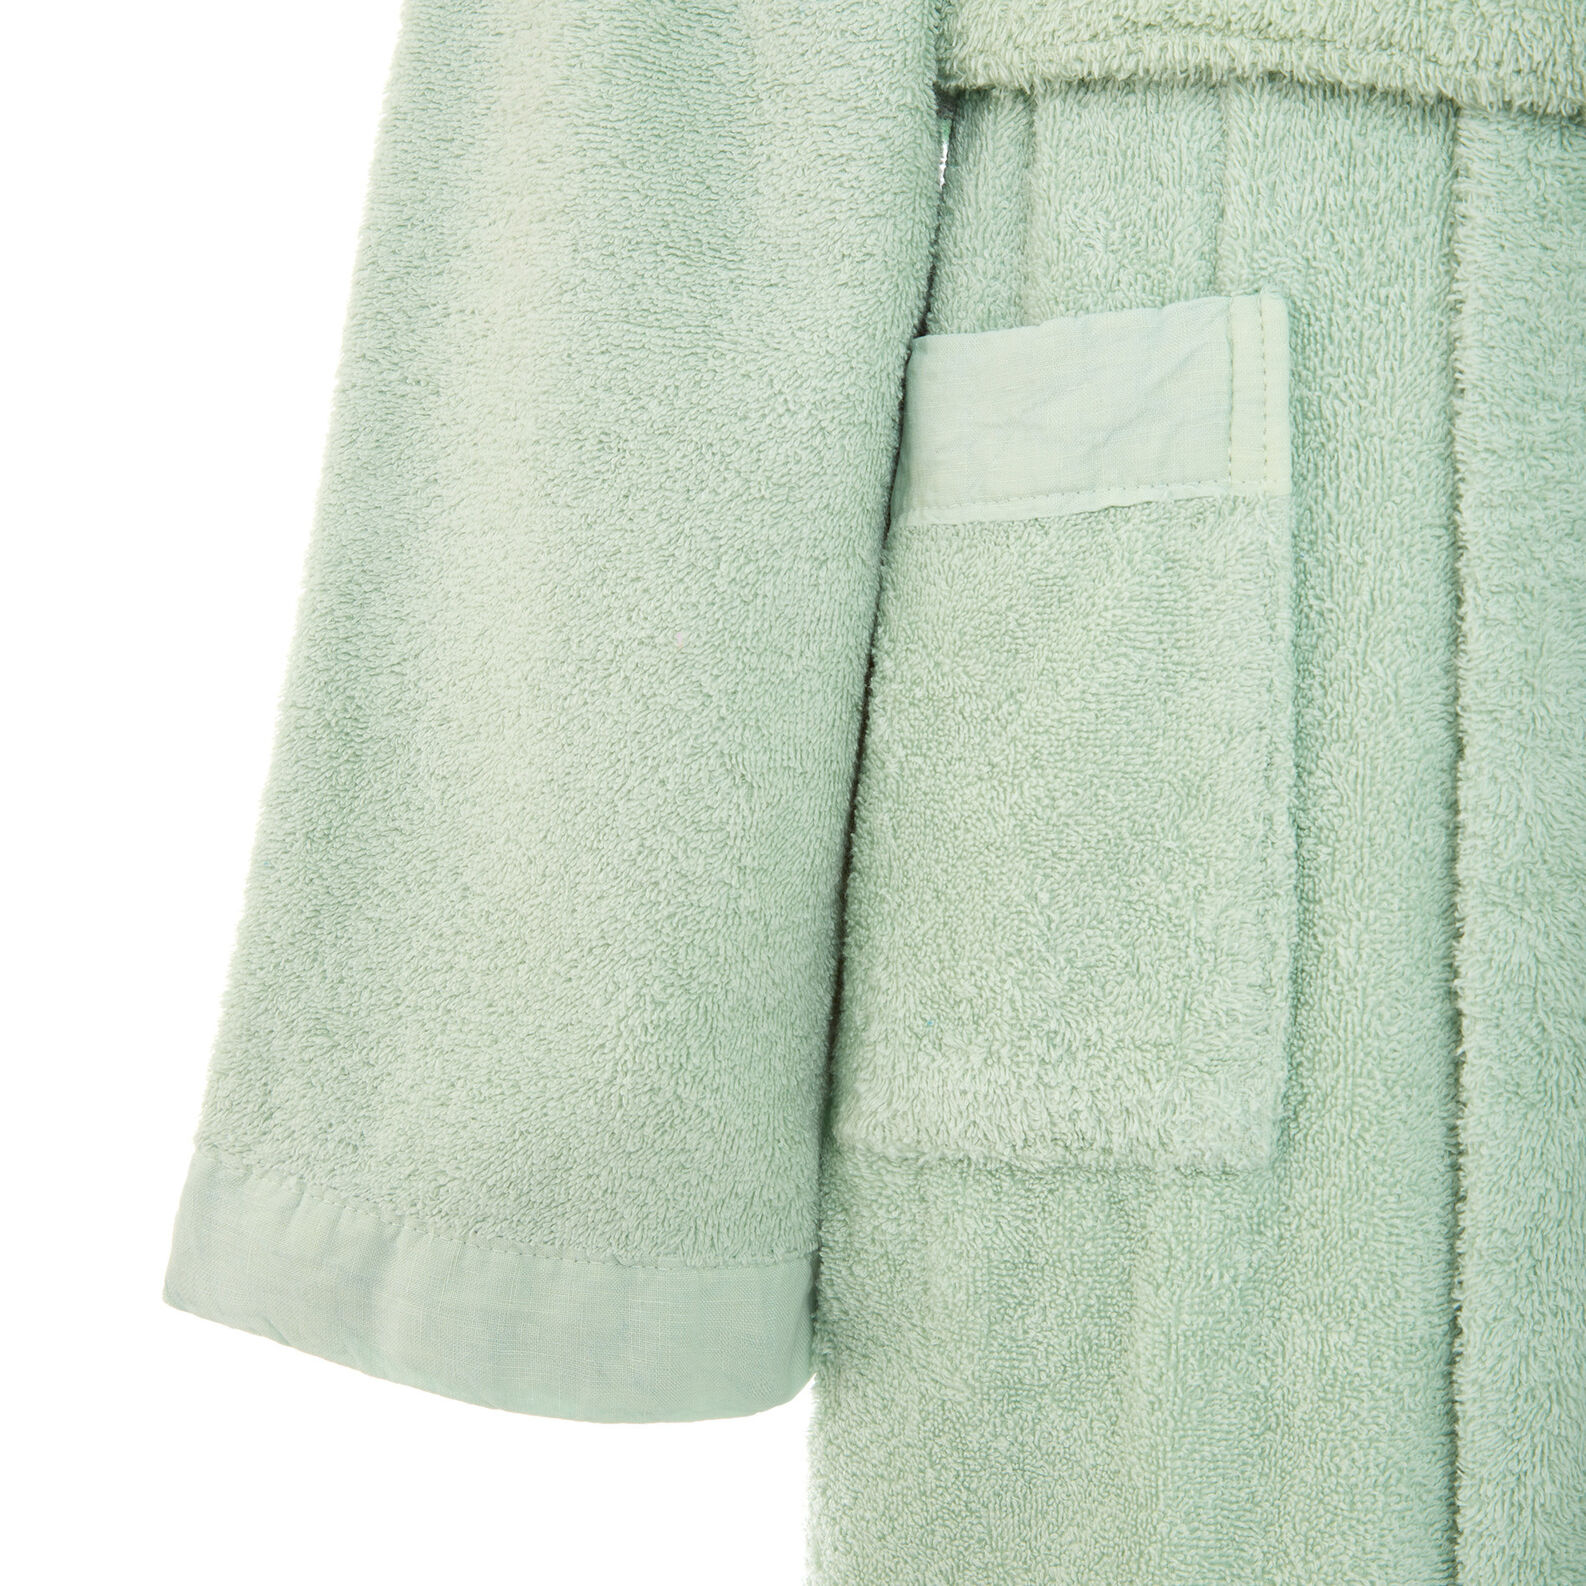 Bathrobe in 100% organic cotton with linen trim